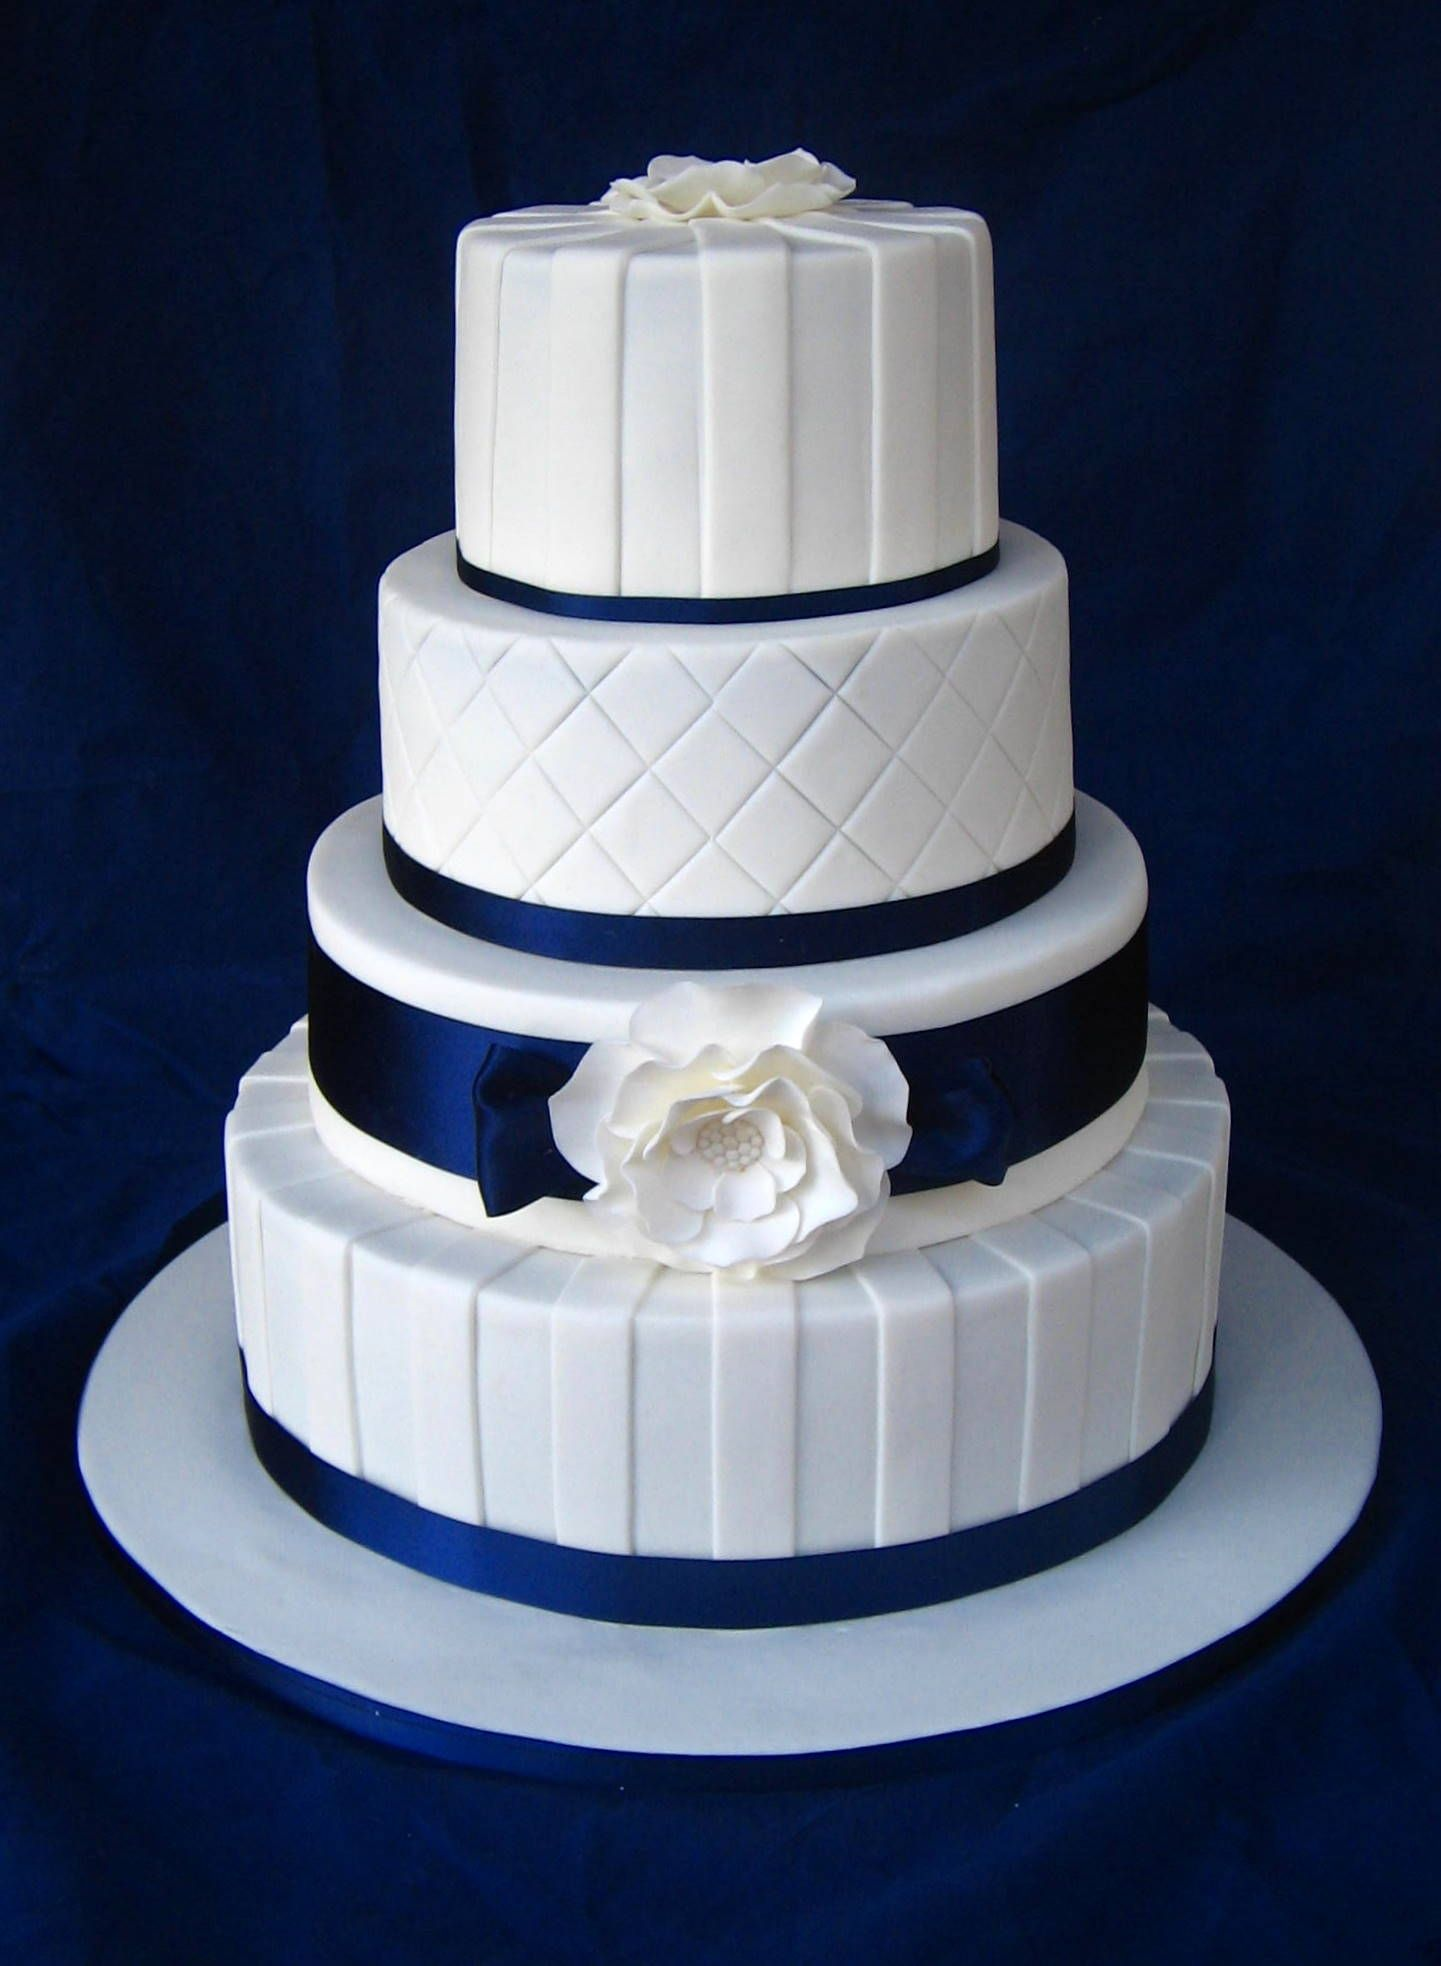 3 tier wedding cake 12 9 6 navy amp white wedding cake chocolate and white chocolate 10277